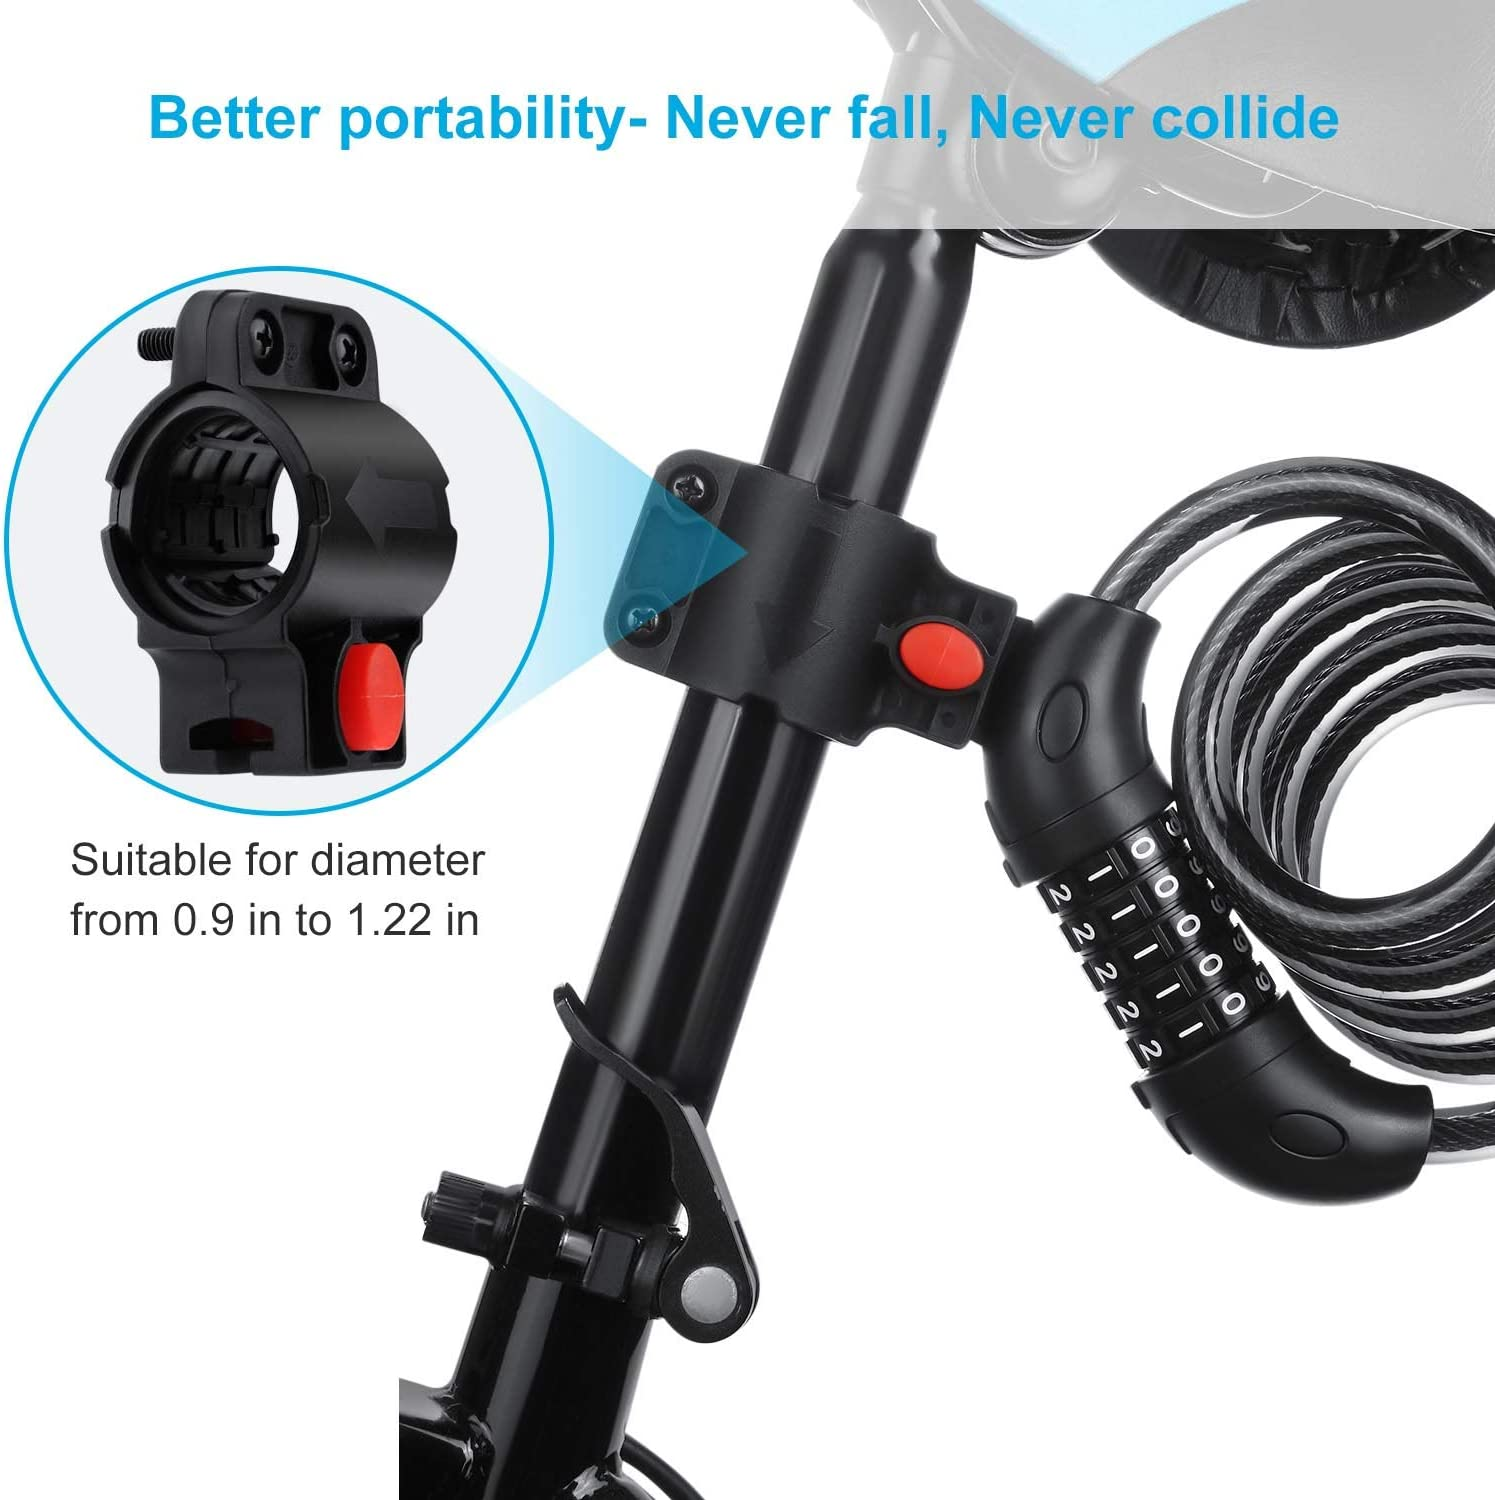 VATAWA Premium Bike Lock with Mounting Bracket 5 Digit Resettable Combination Cable Chain Lock 4 ft Portable Coiling Bike Cable Lock 1.2mx12mm 1//2 in Diameter High Security Bike Lock Cable